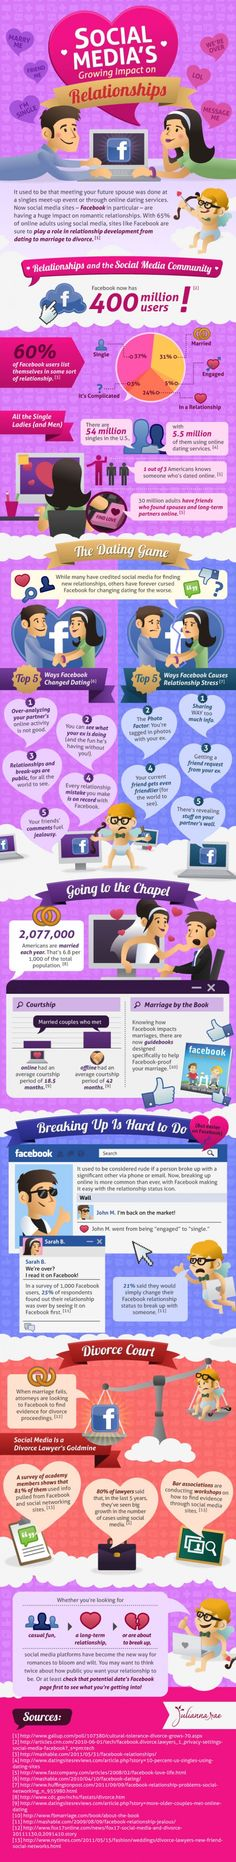 Social Media's growing impact on relationships.  Very interesting stats.  (25% of respondents in one survey found out through Facebook that their partner broke up with them!)